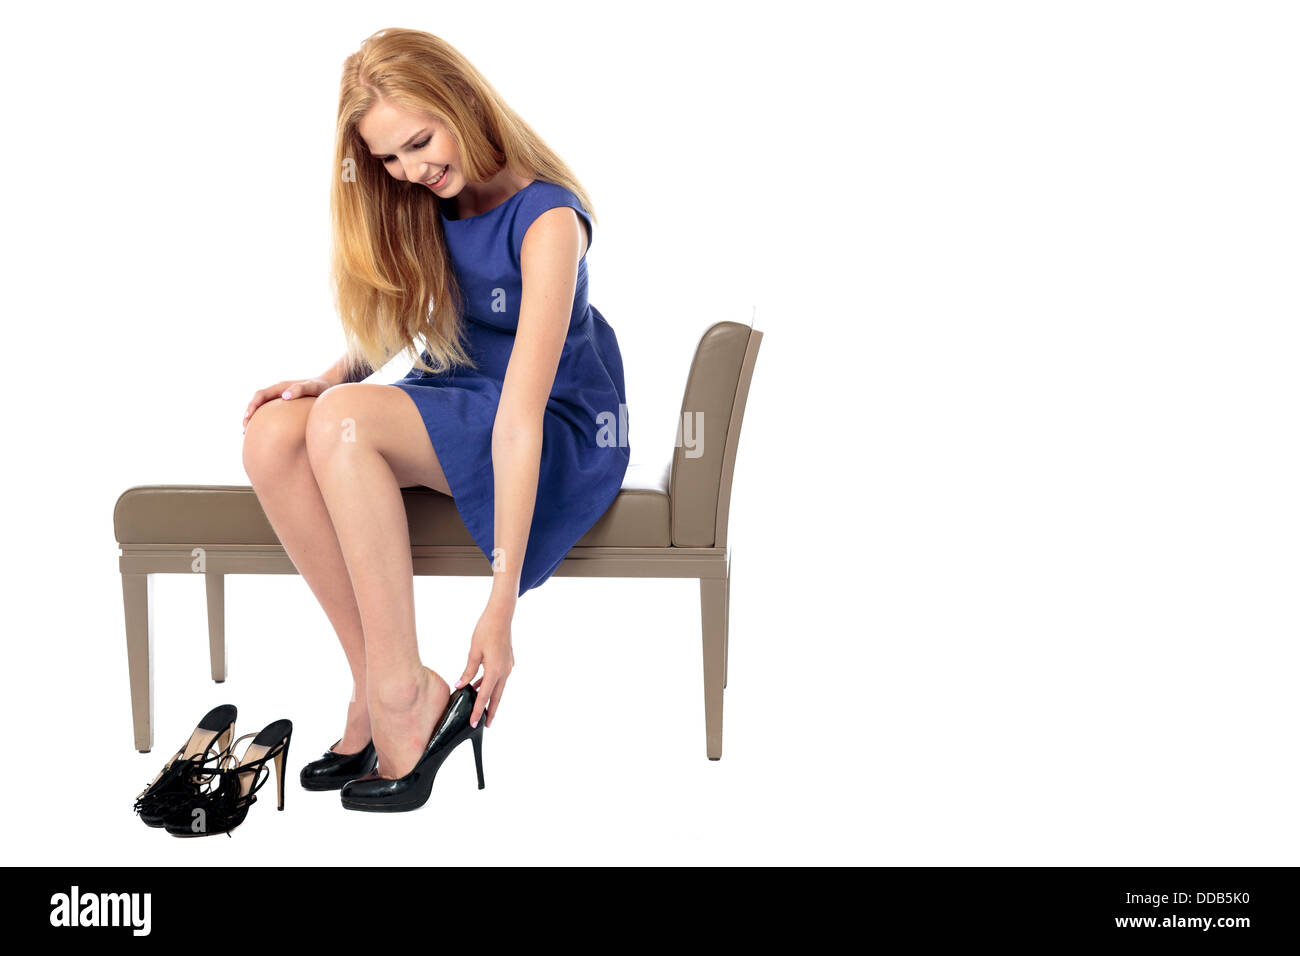 Elegant smiling young woman sitting on a bench changing her shoes for a stylish classical high heeled court shoe, - Stock Image